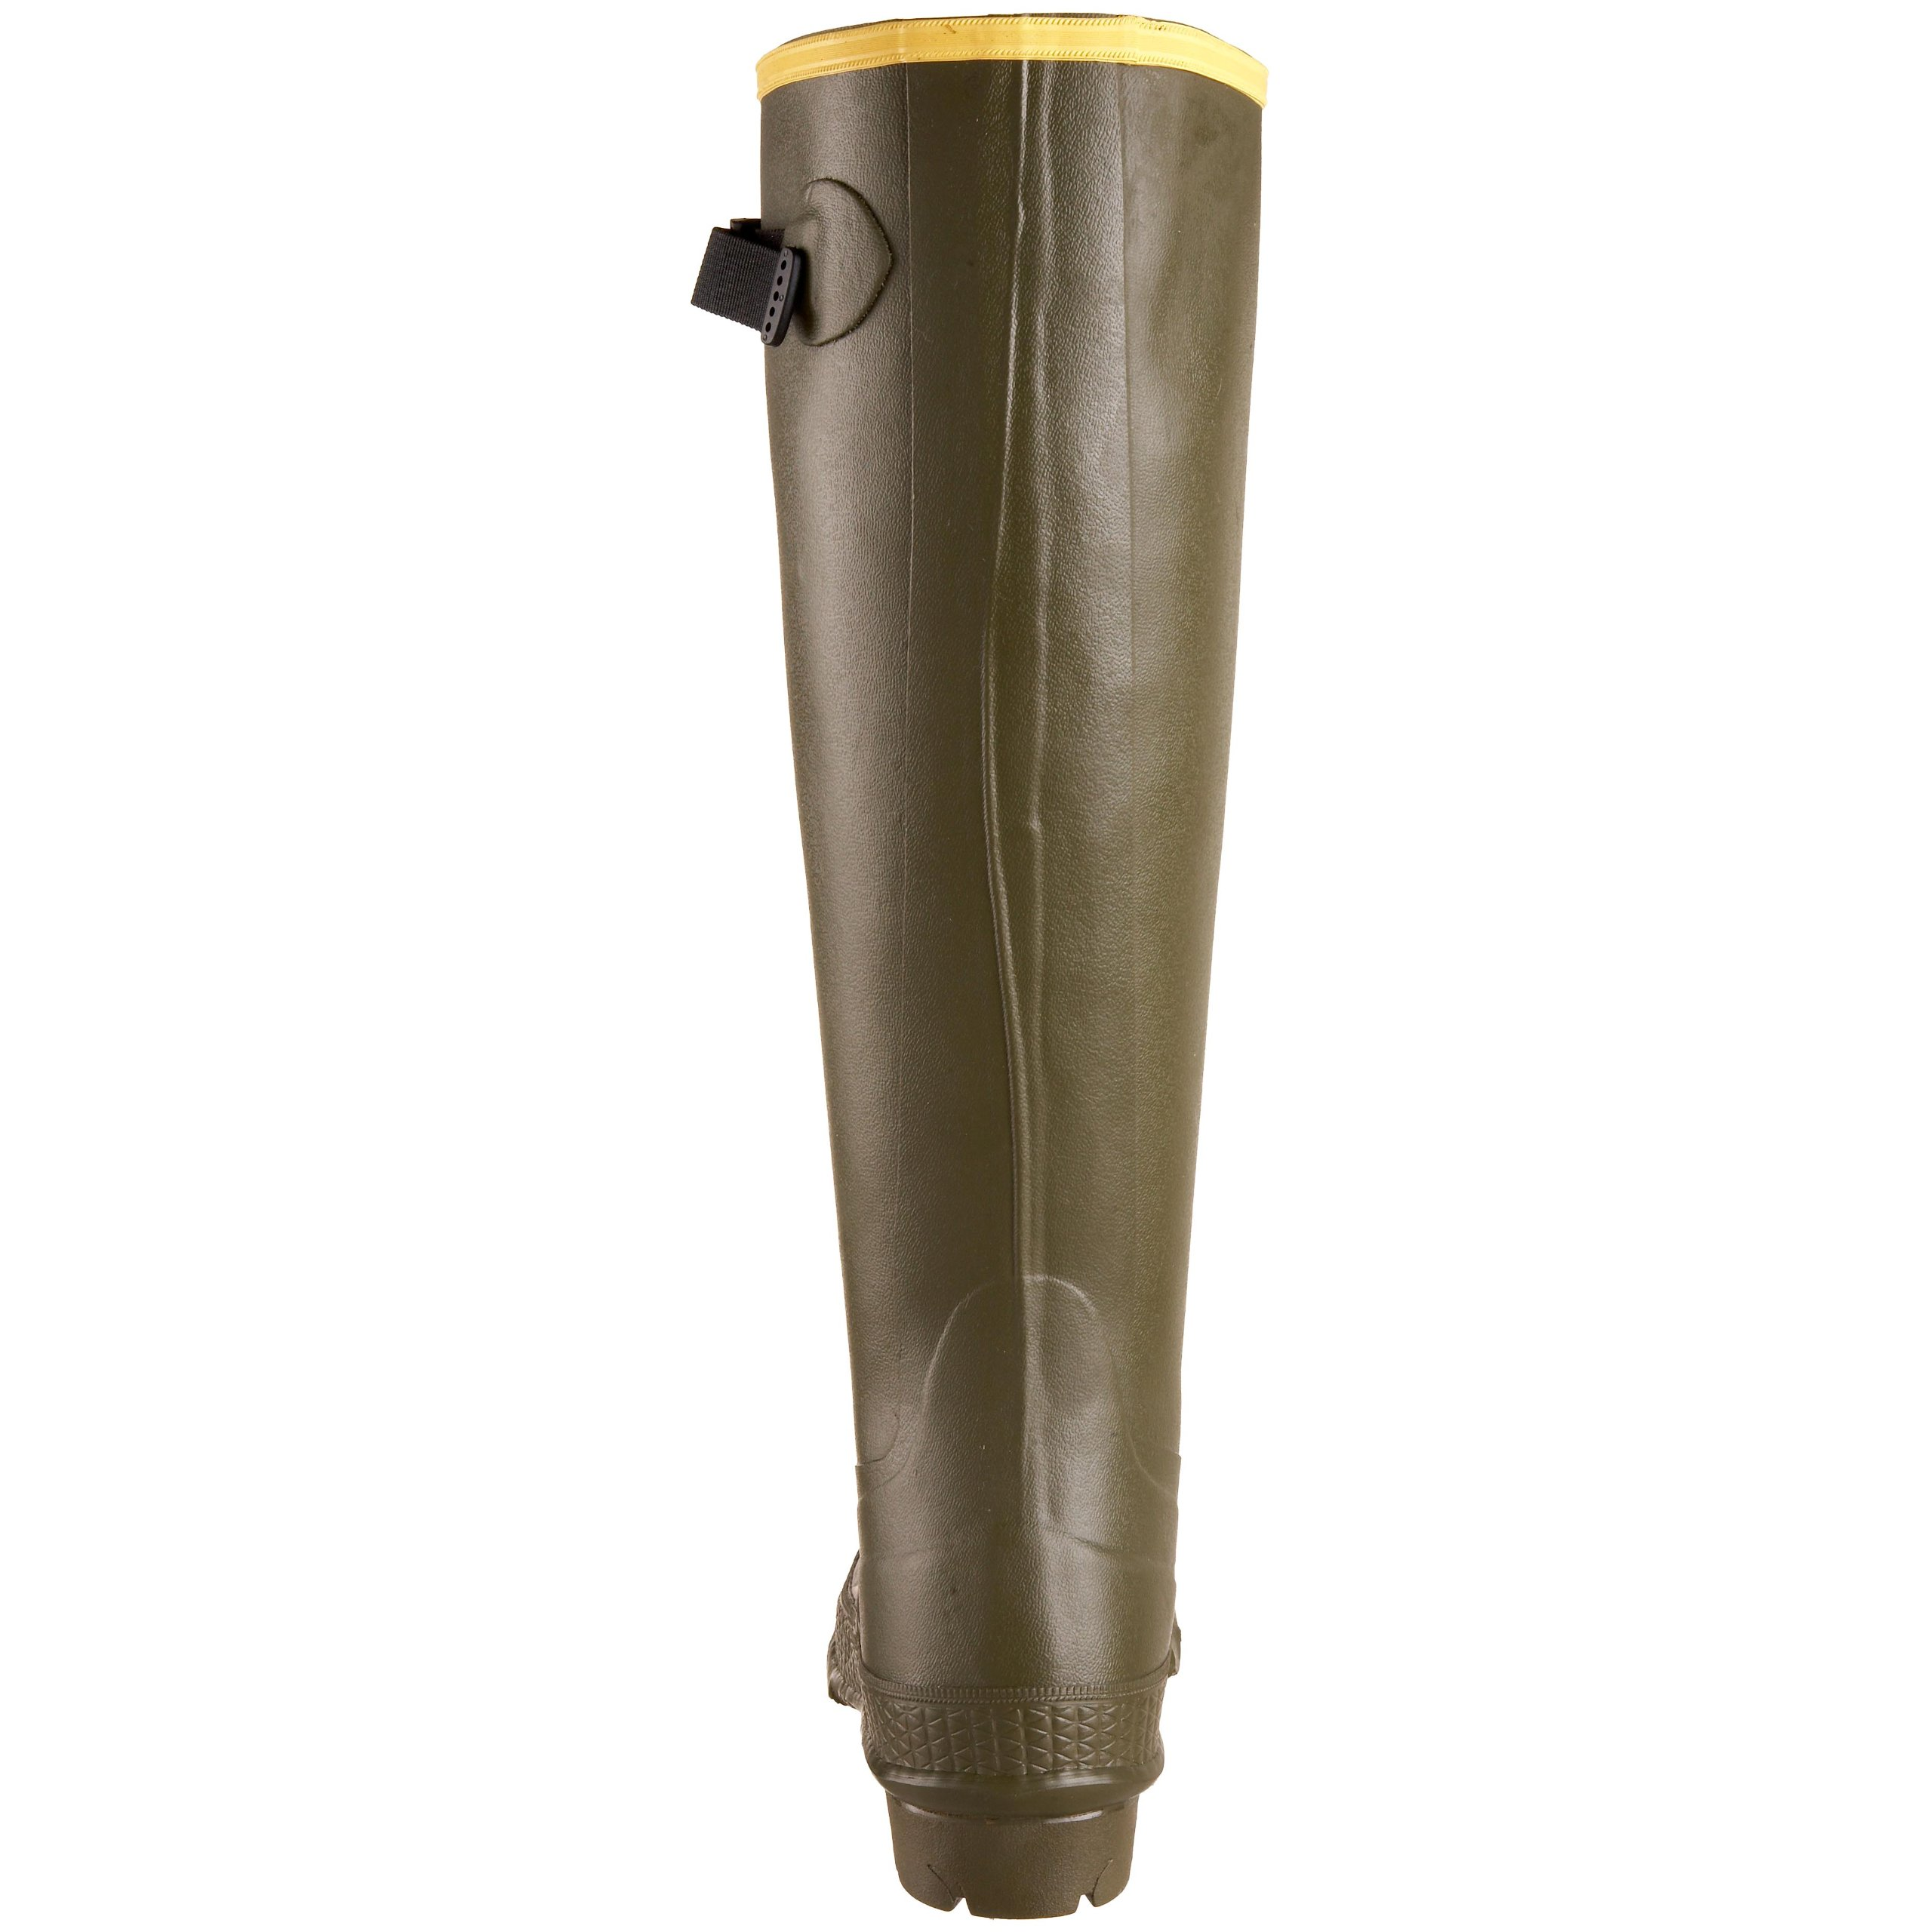 LaCrosse Men's Grange 18'' Hunting Boot,OD Green,15 M US by Lacrosse (Image #2)